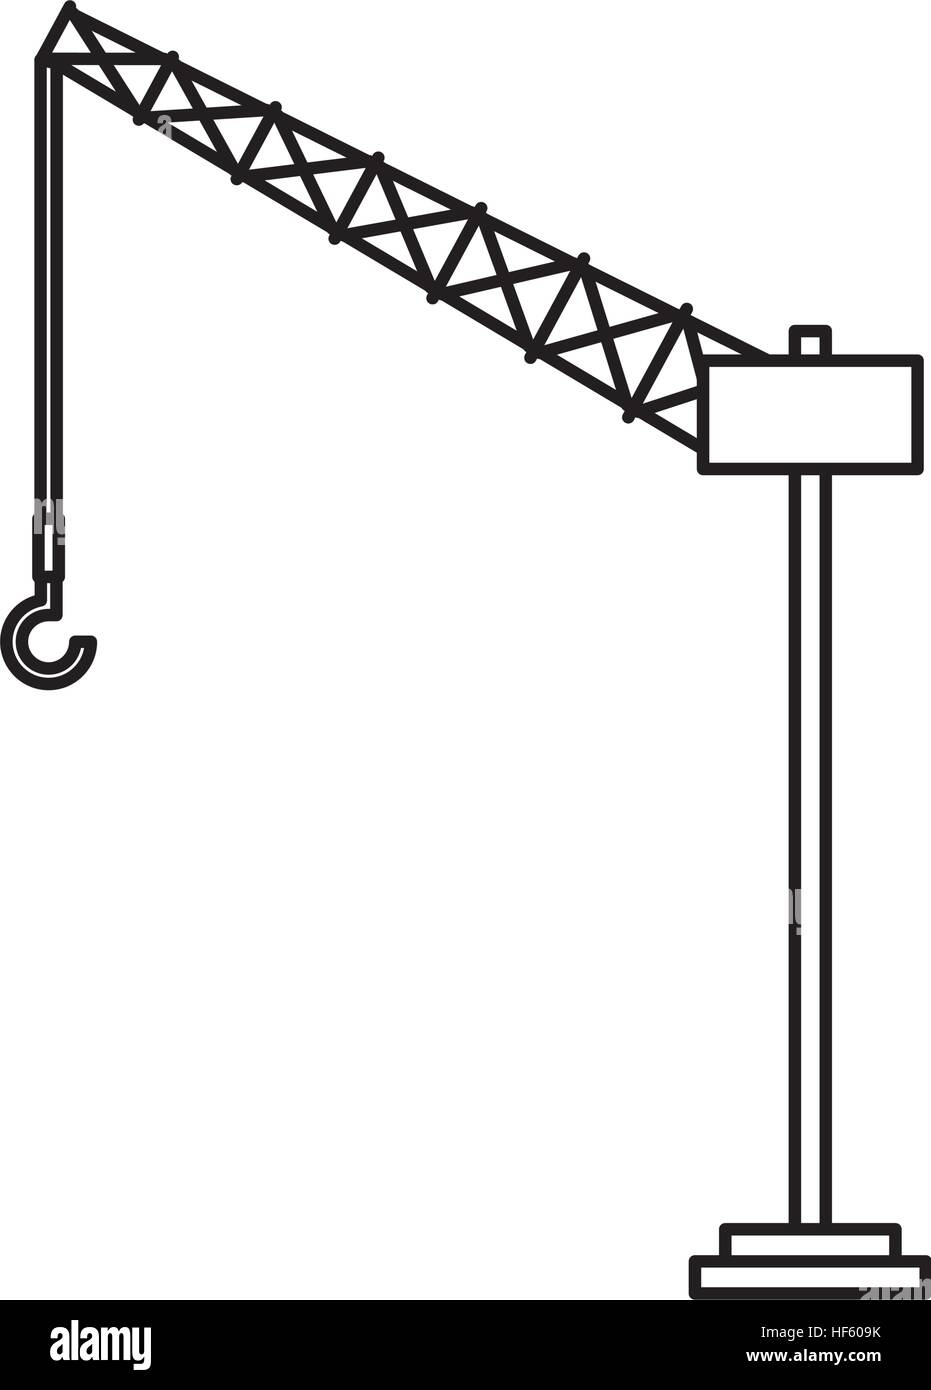 Tower Crane Design : Tower crane service icon vector illustration design stock